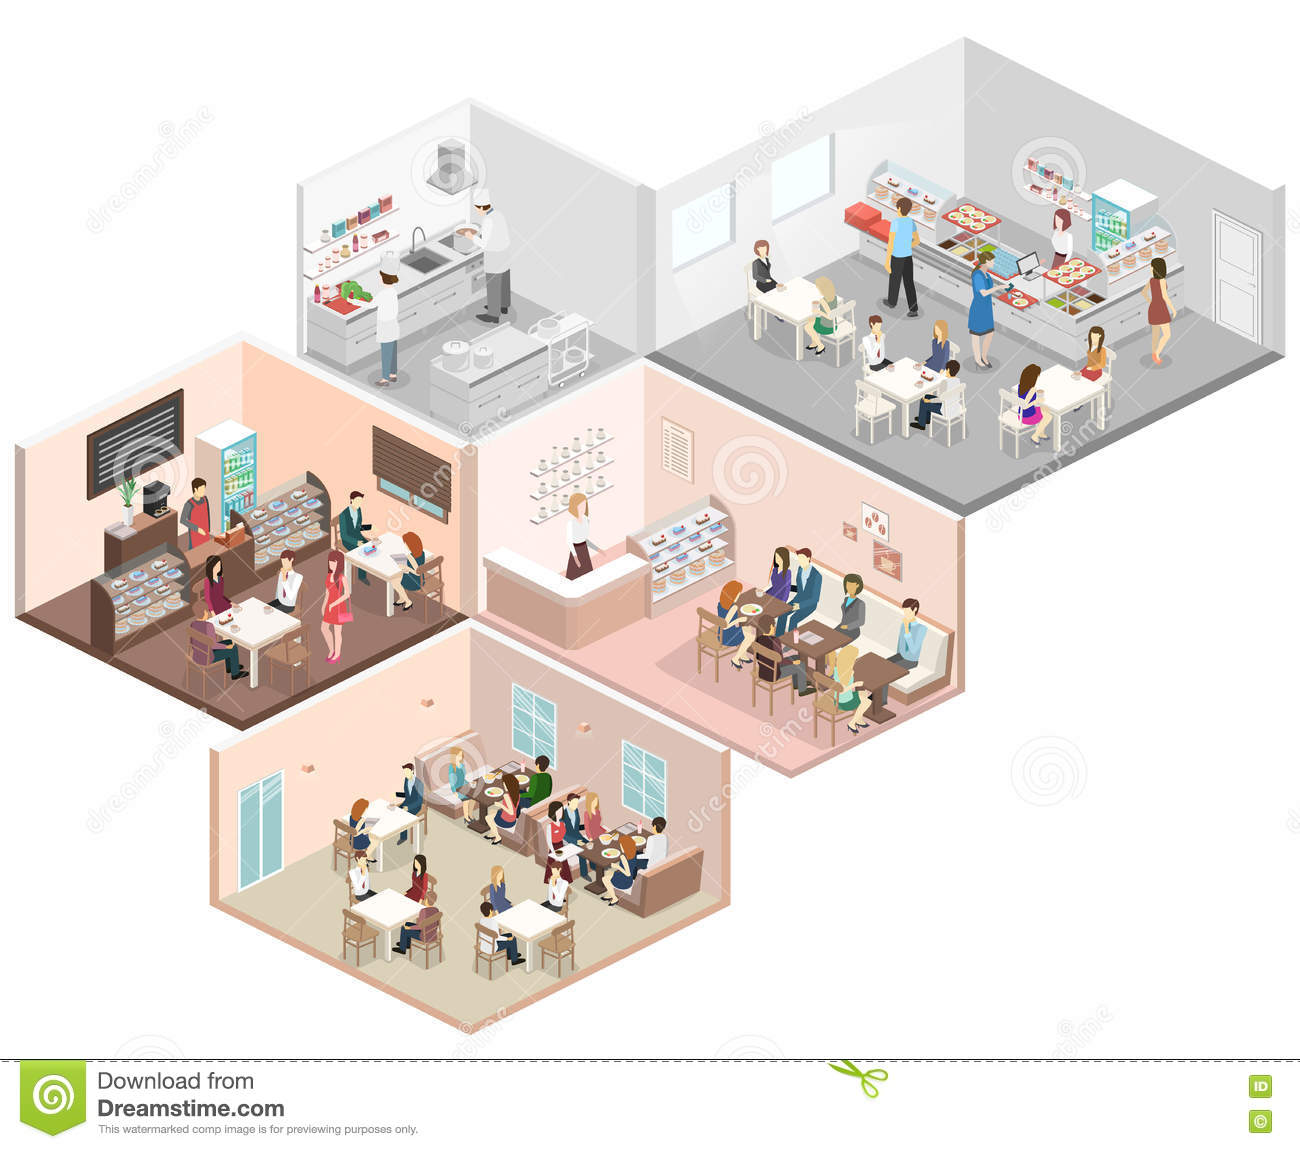 Restaurant Kitchen Illustration isometric flat 3d concept interior cafe, canteen, restaurant